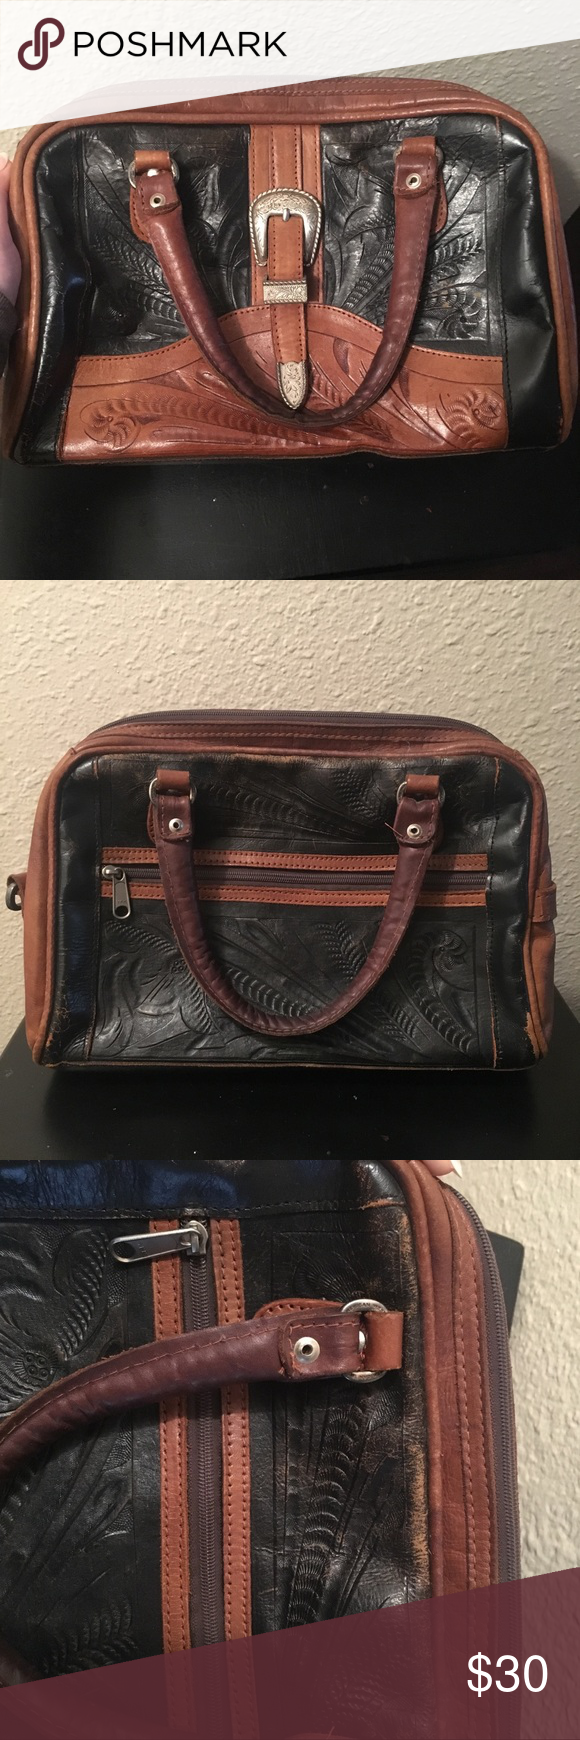 e44cef9dd3df Vintage Western leather hand bag purse doctor I love this bag and sad to  see it